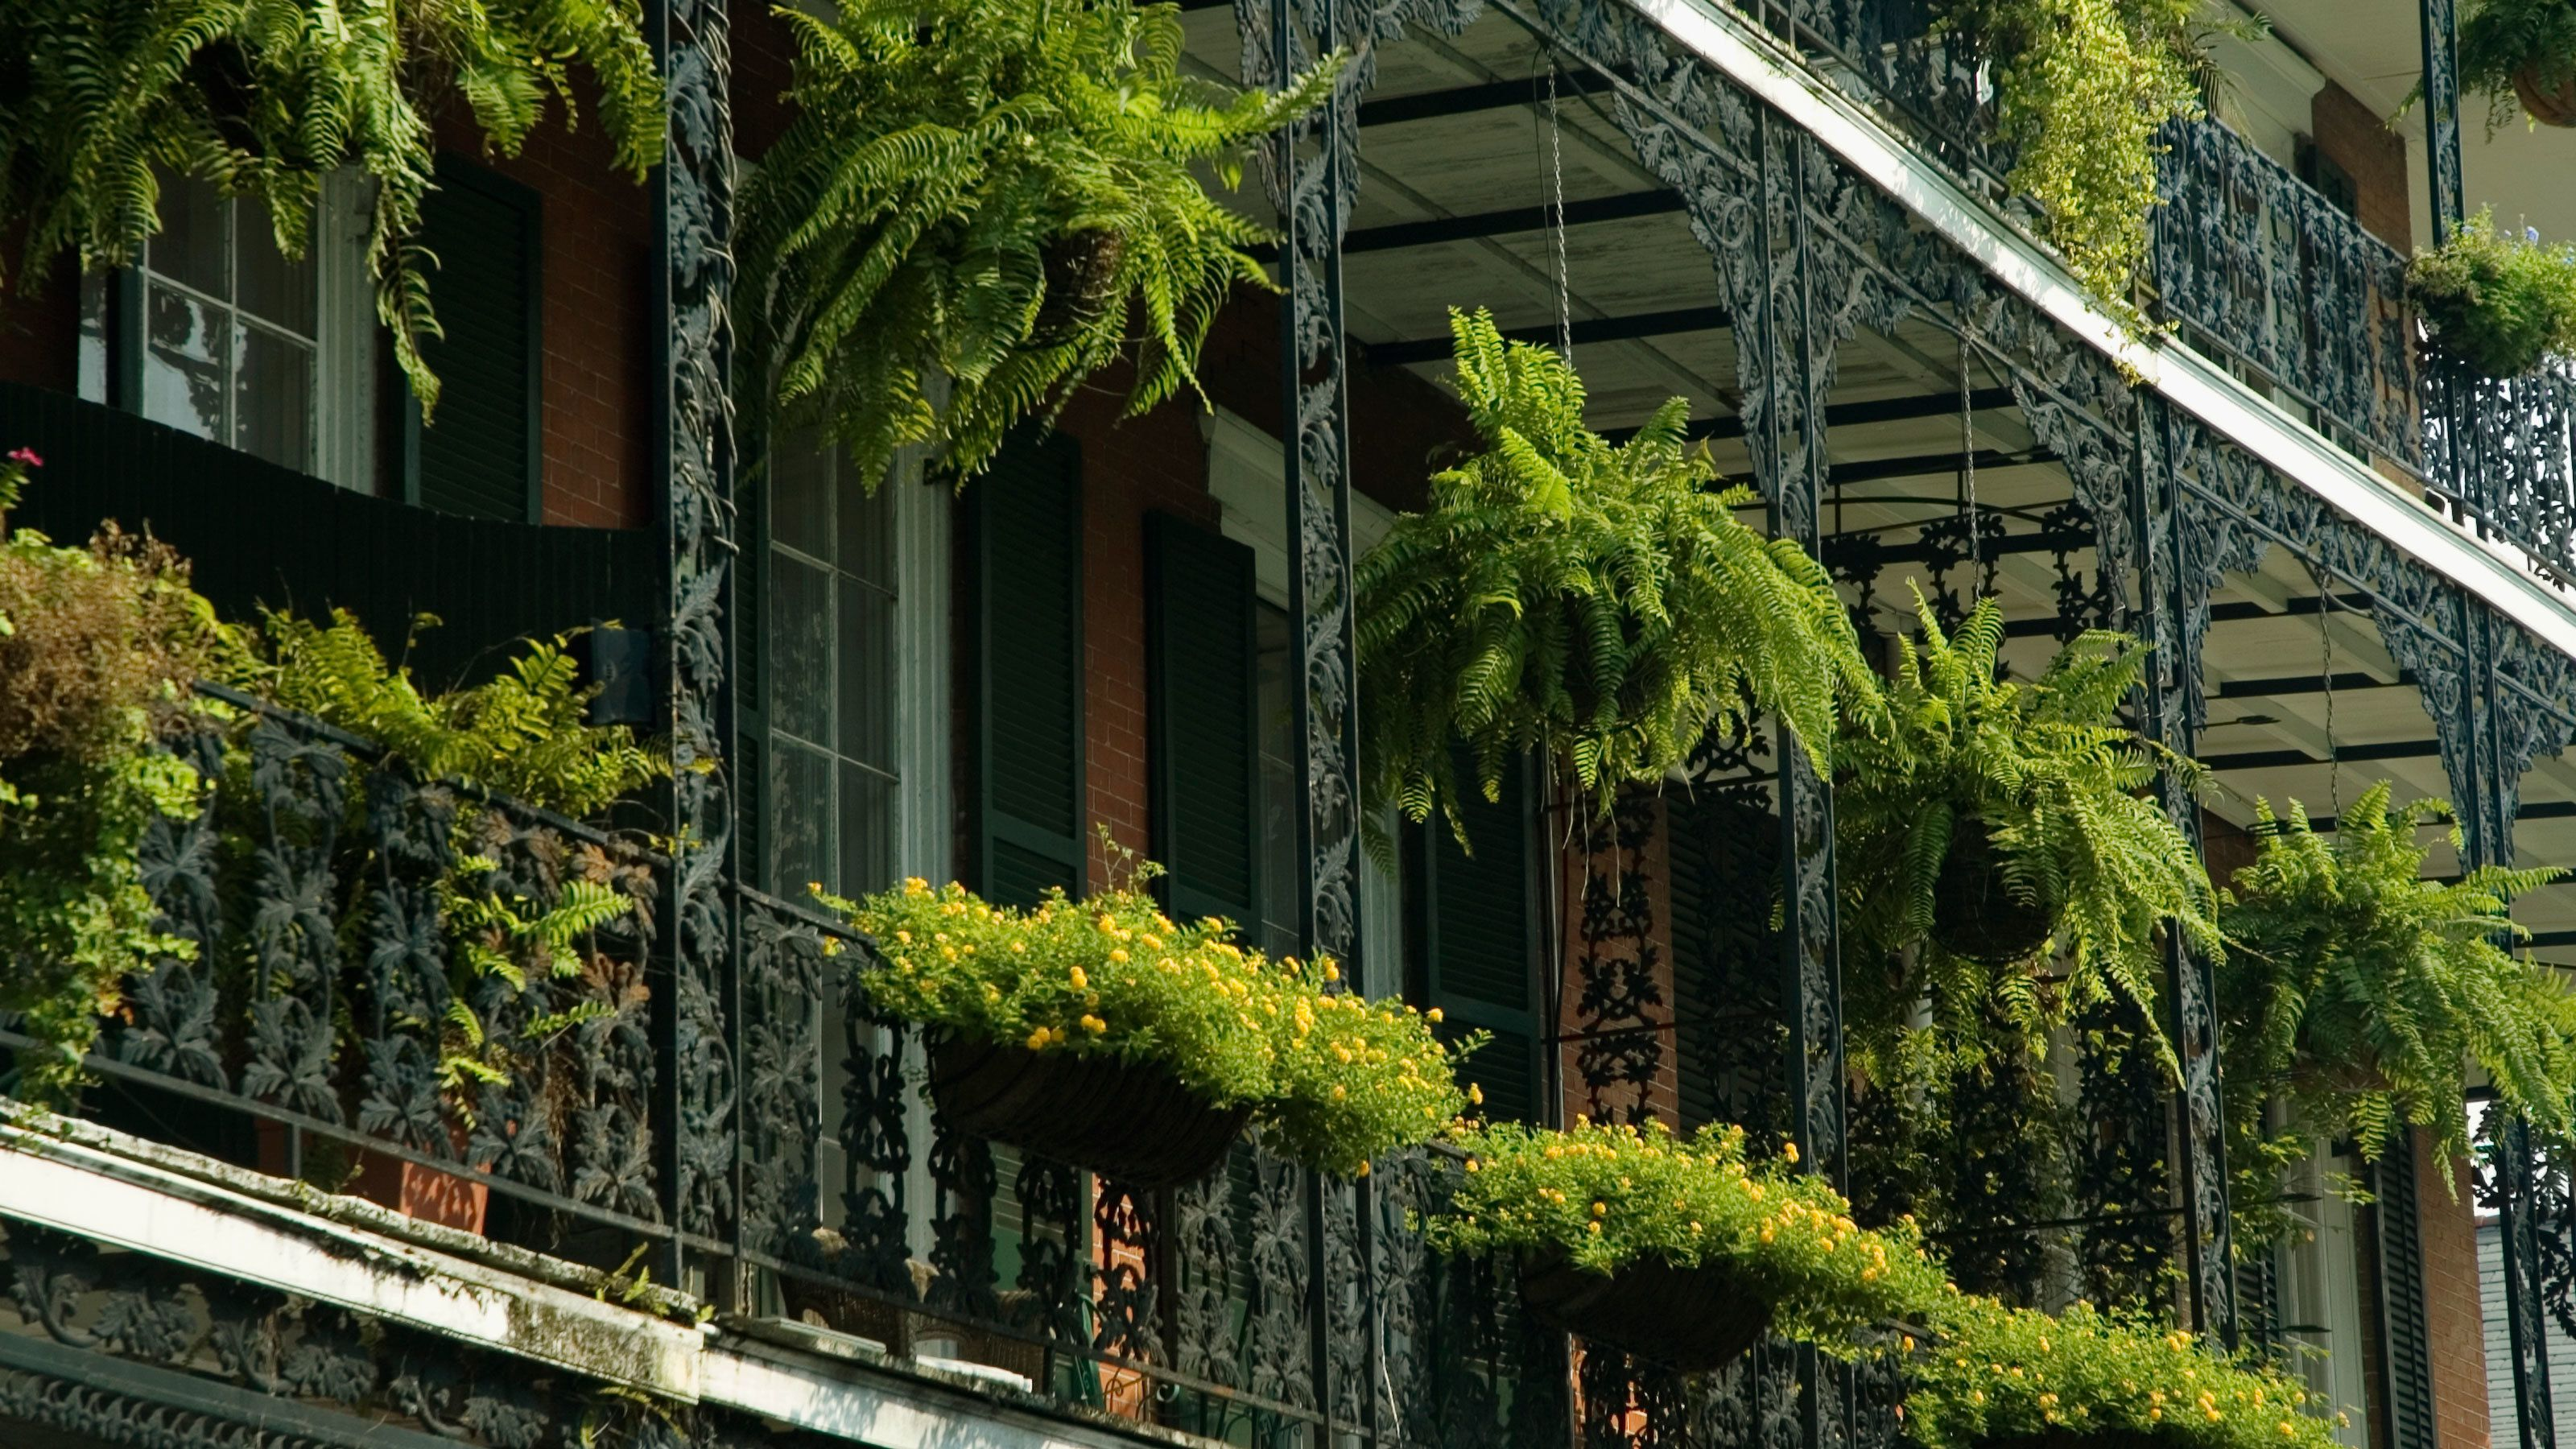 Close up building views on the French Quarter Walking Tour